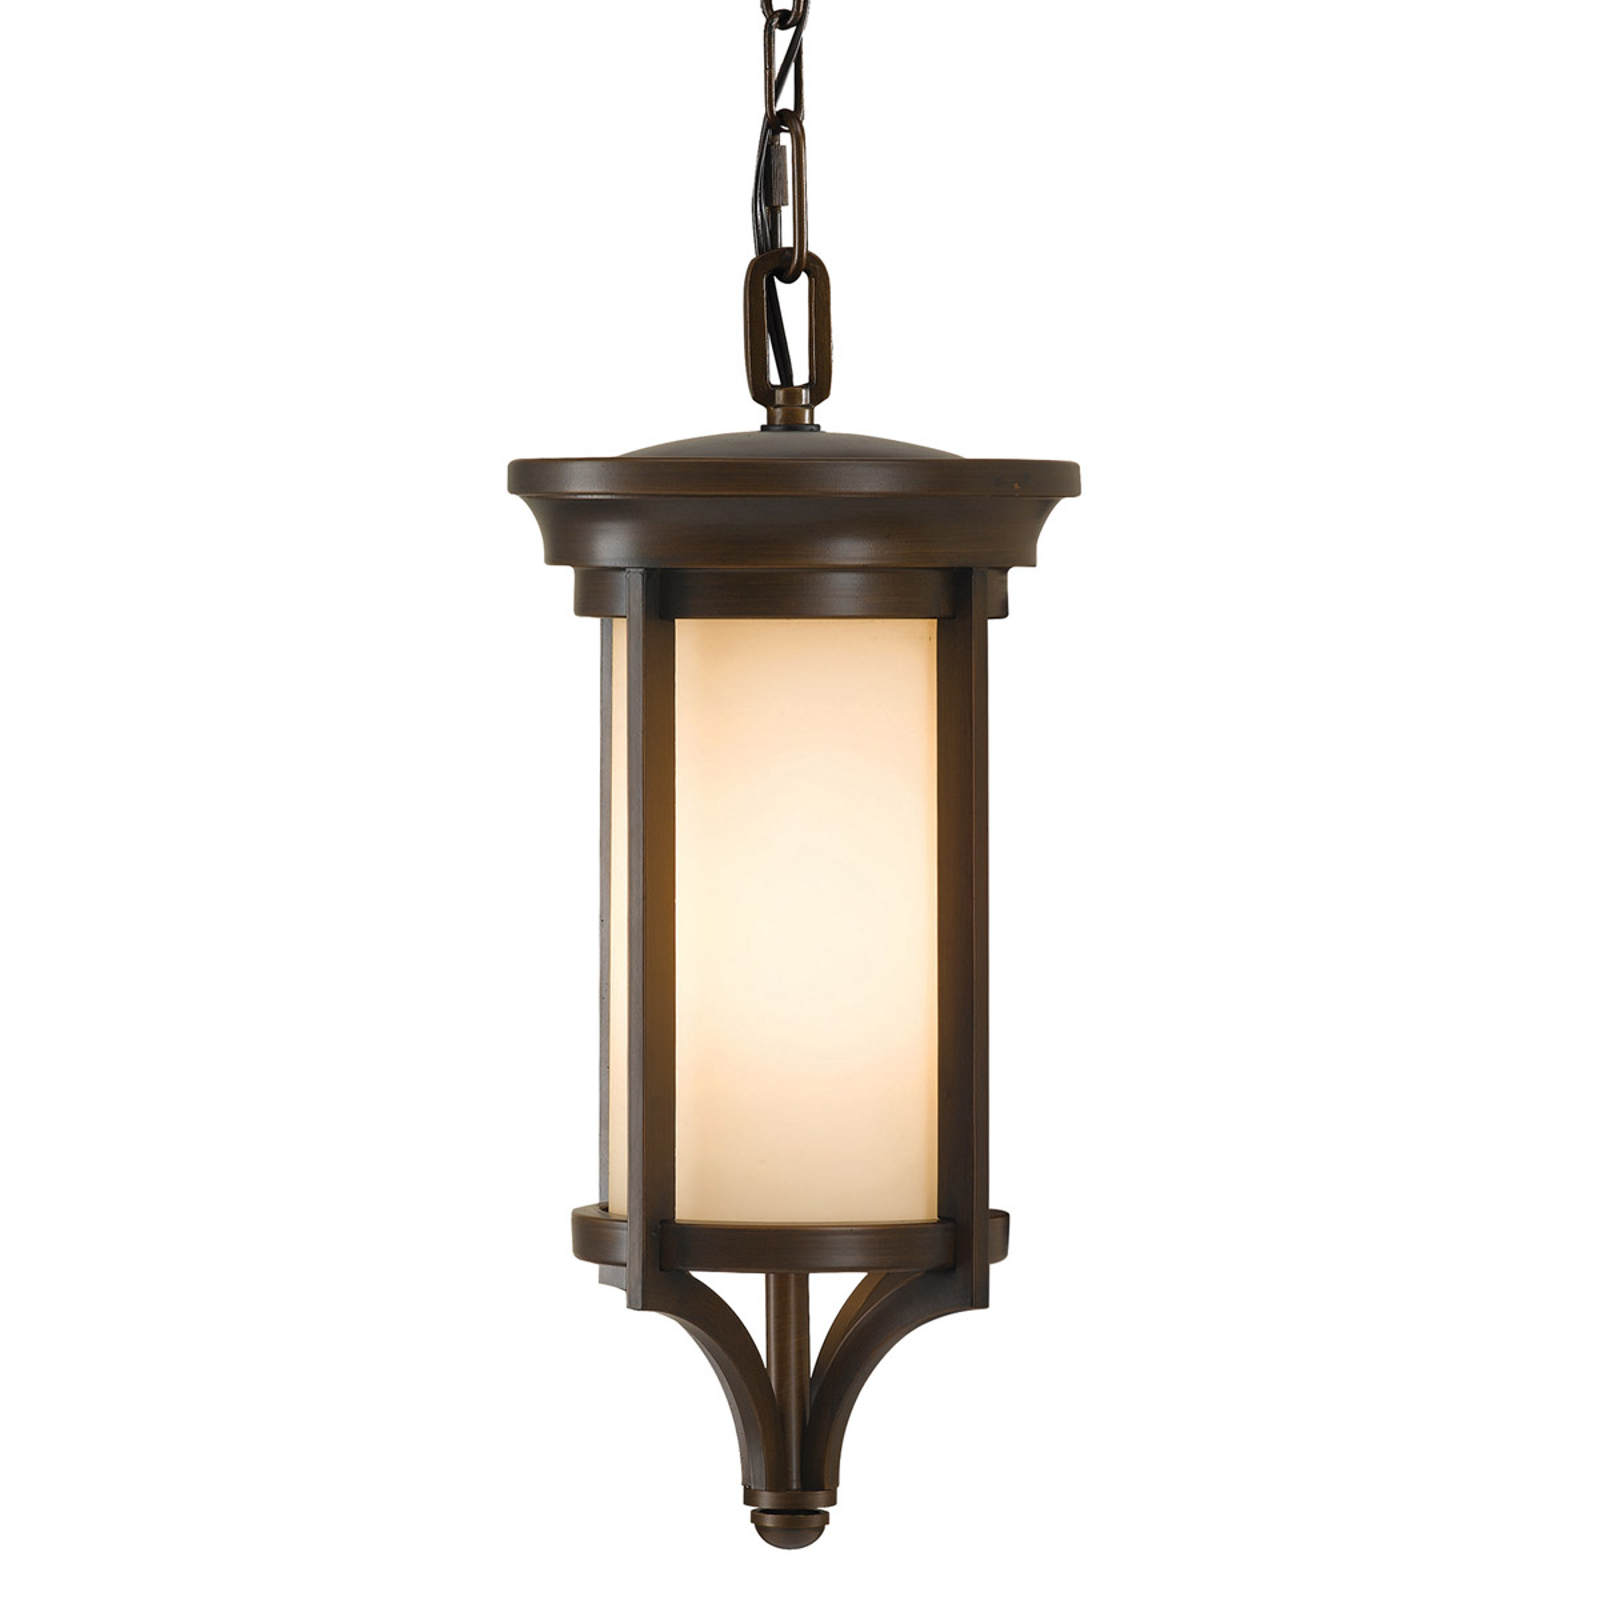 Stylish Hanging Lamp Merrill For Outdoor Use Lights Co Uk